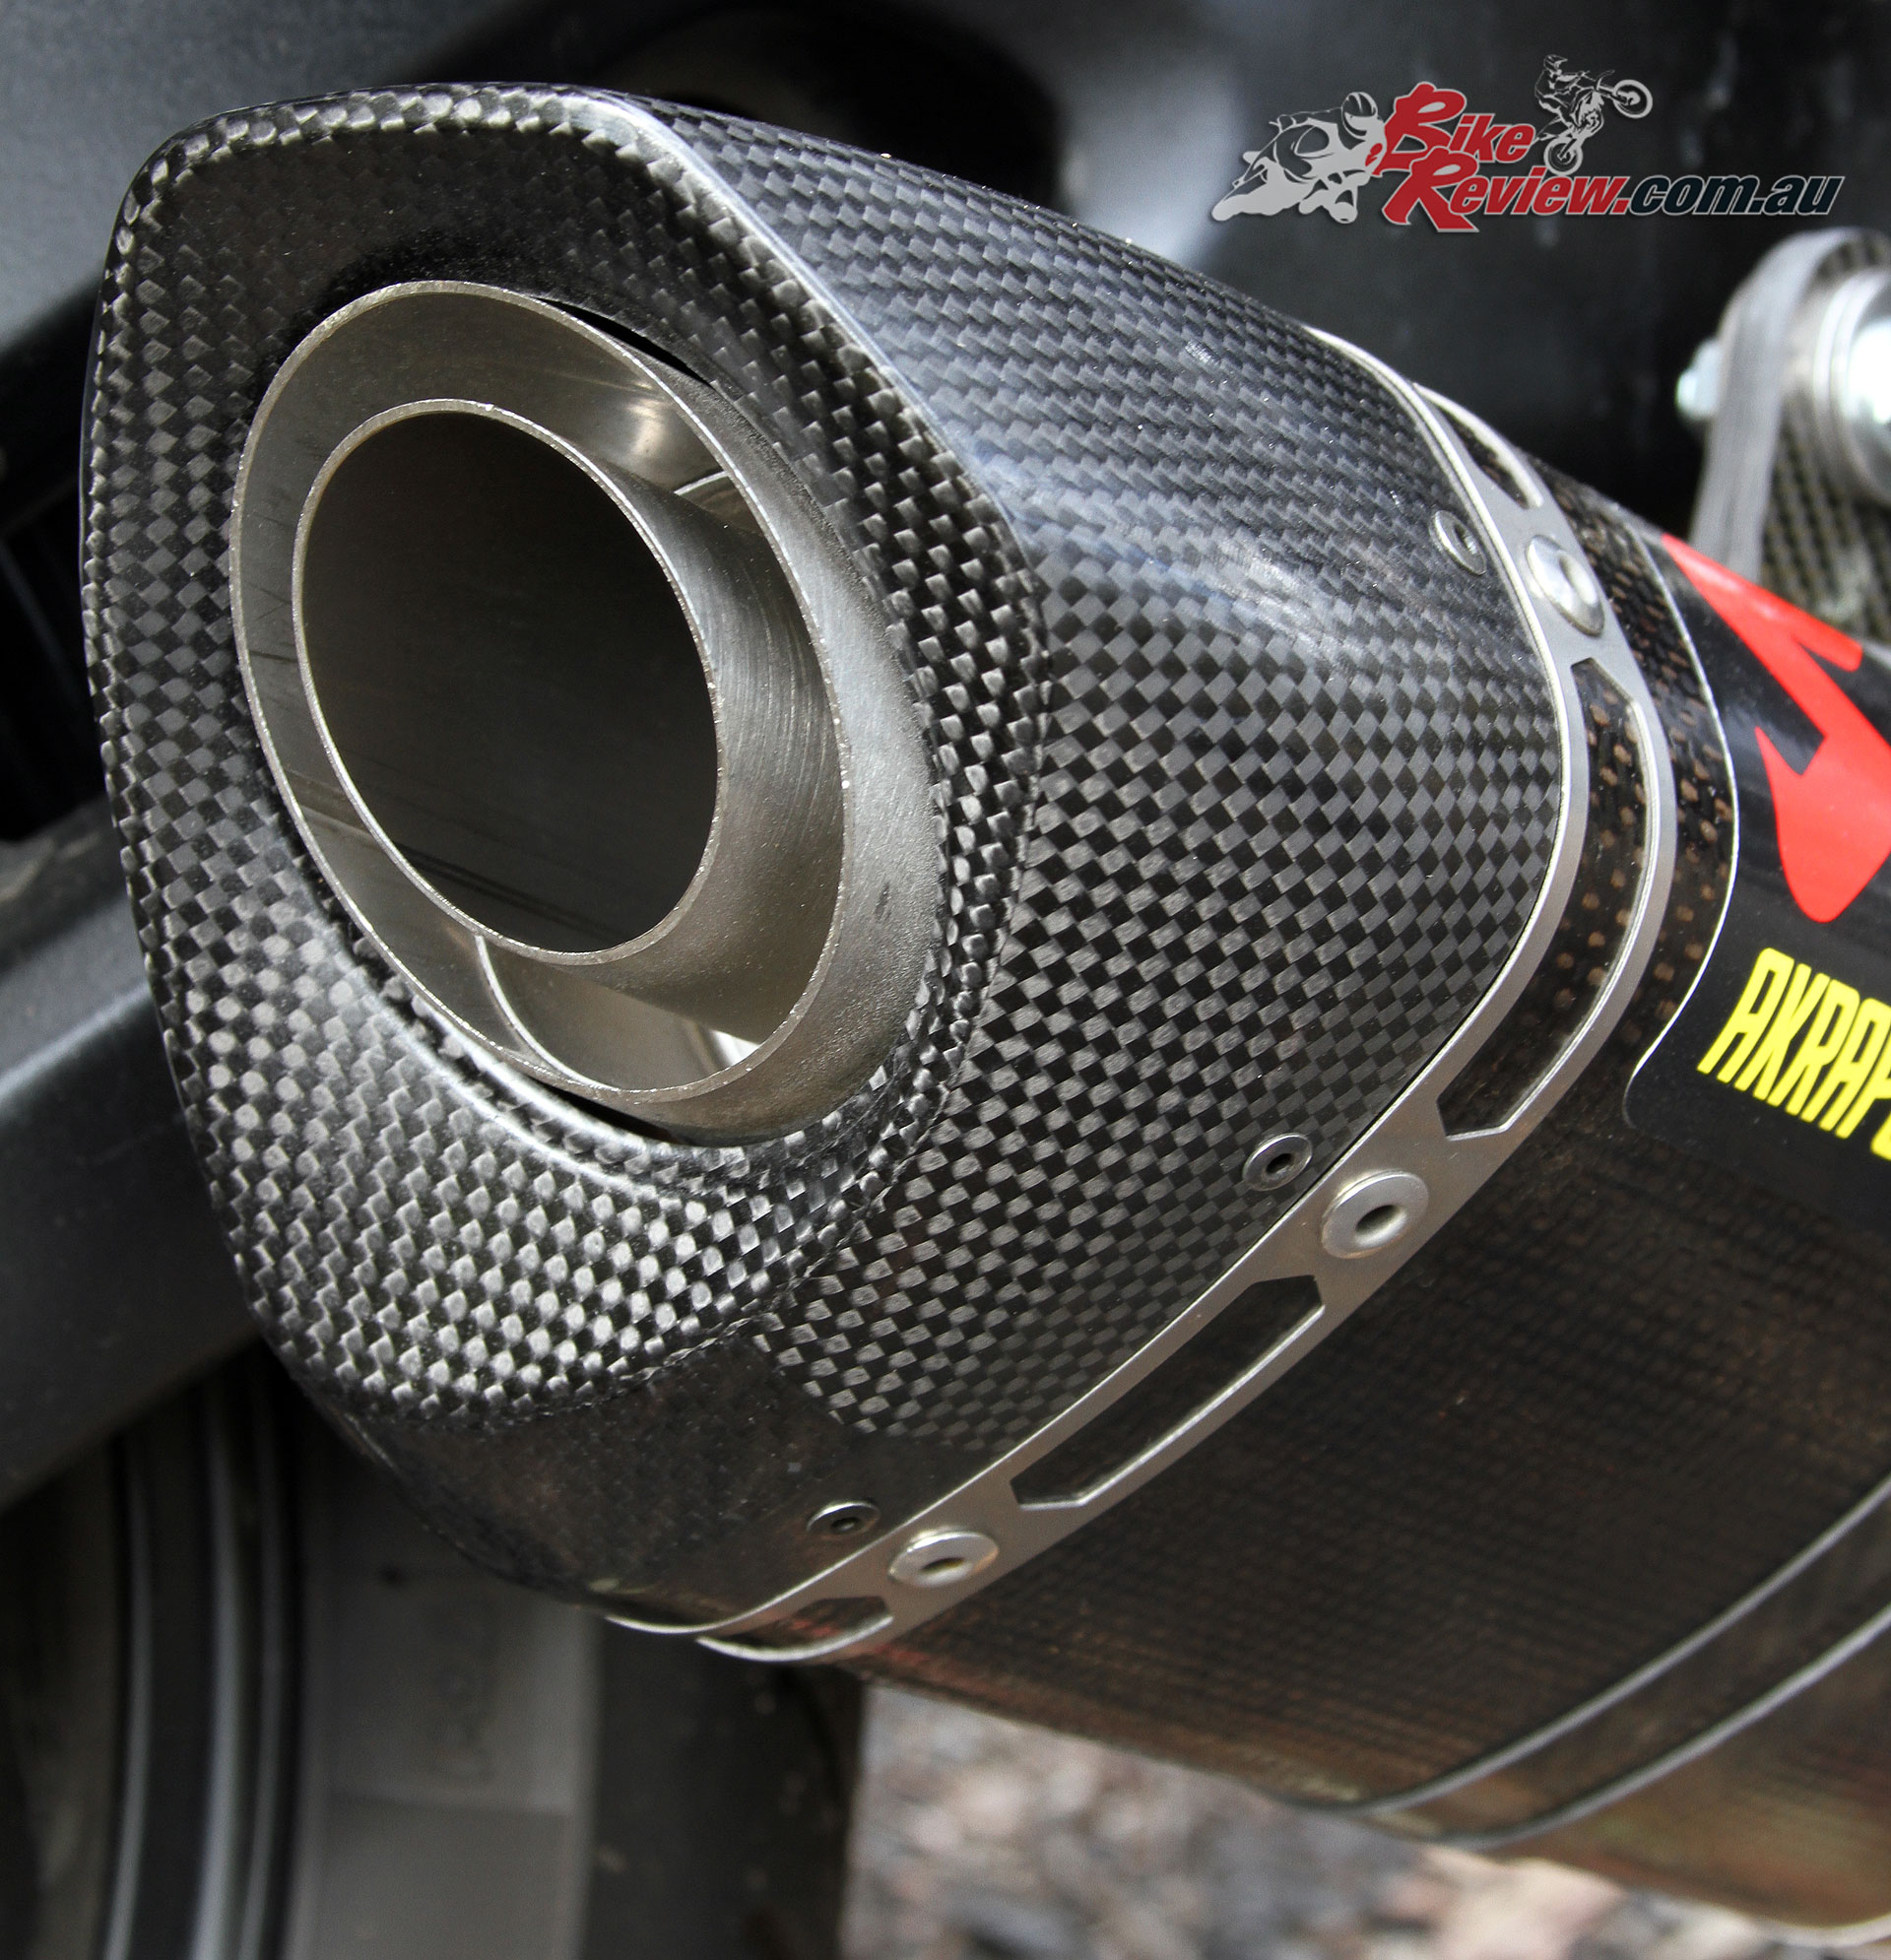 A removable bung is well integrated into the exhaust, for easy fitment and removal. We've left it in for now.